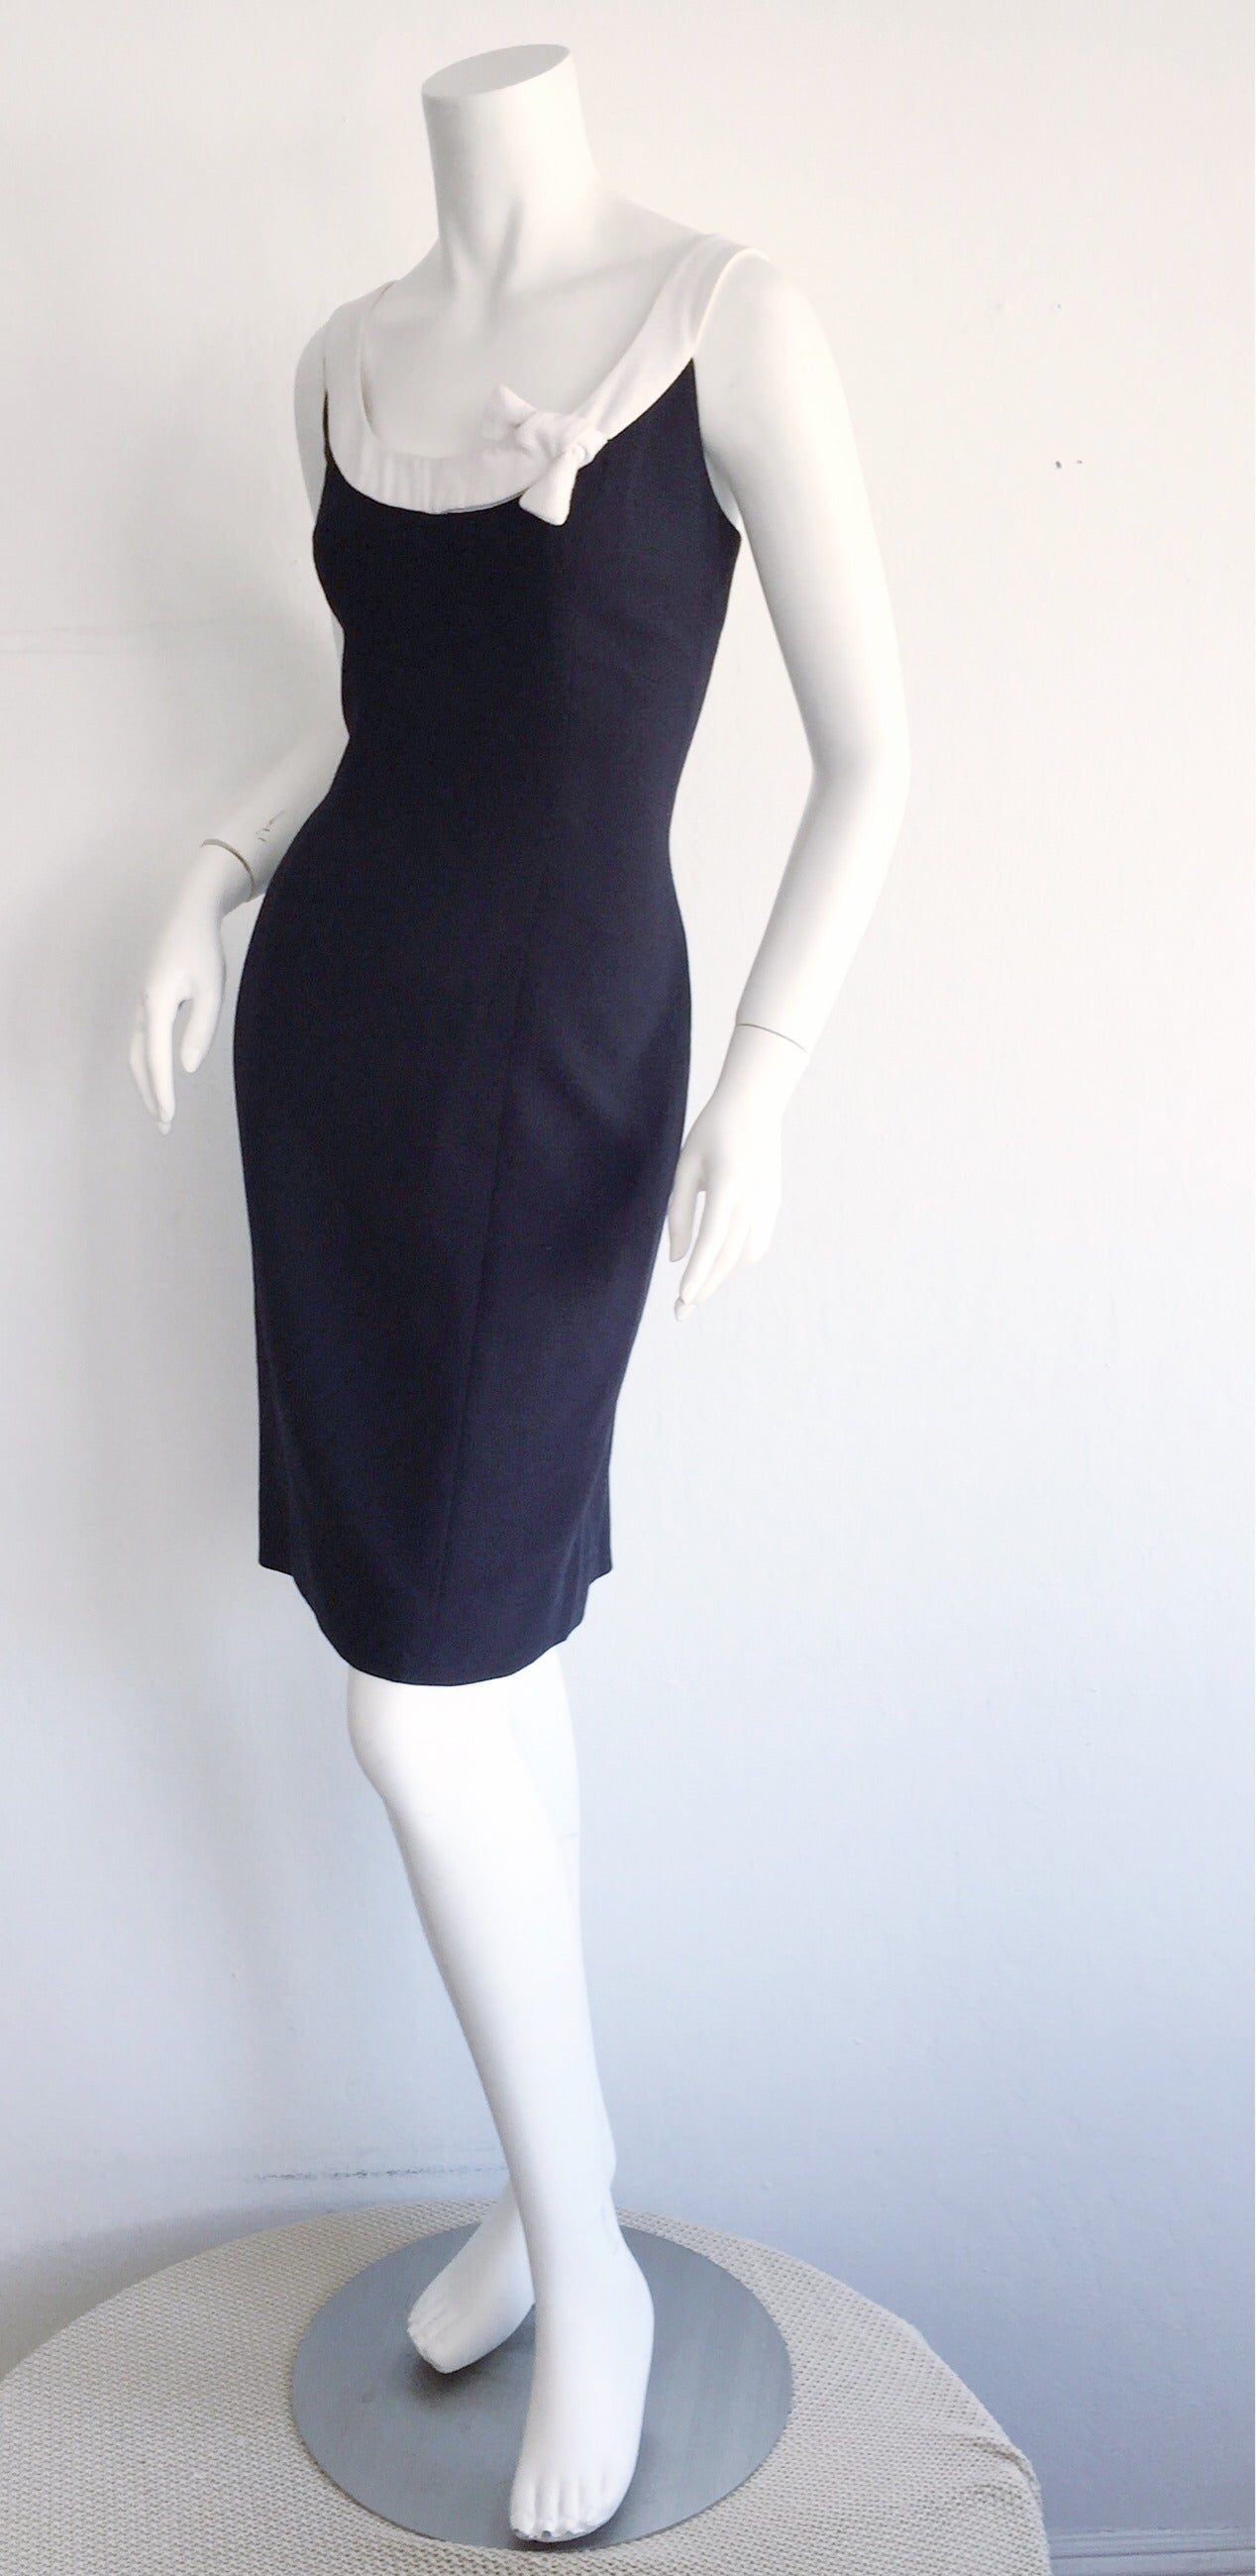 1990s Vintage Oscar de la Renta Navy Blue + White Nautical Bow Dress 4